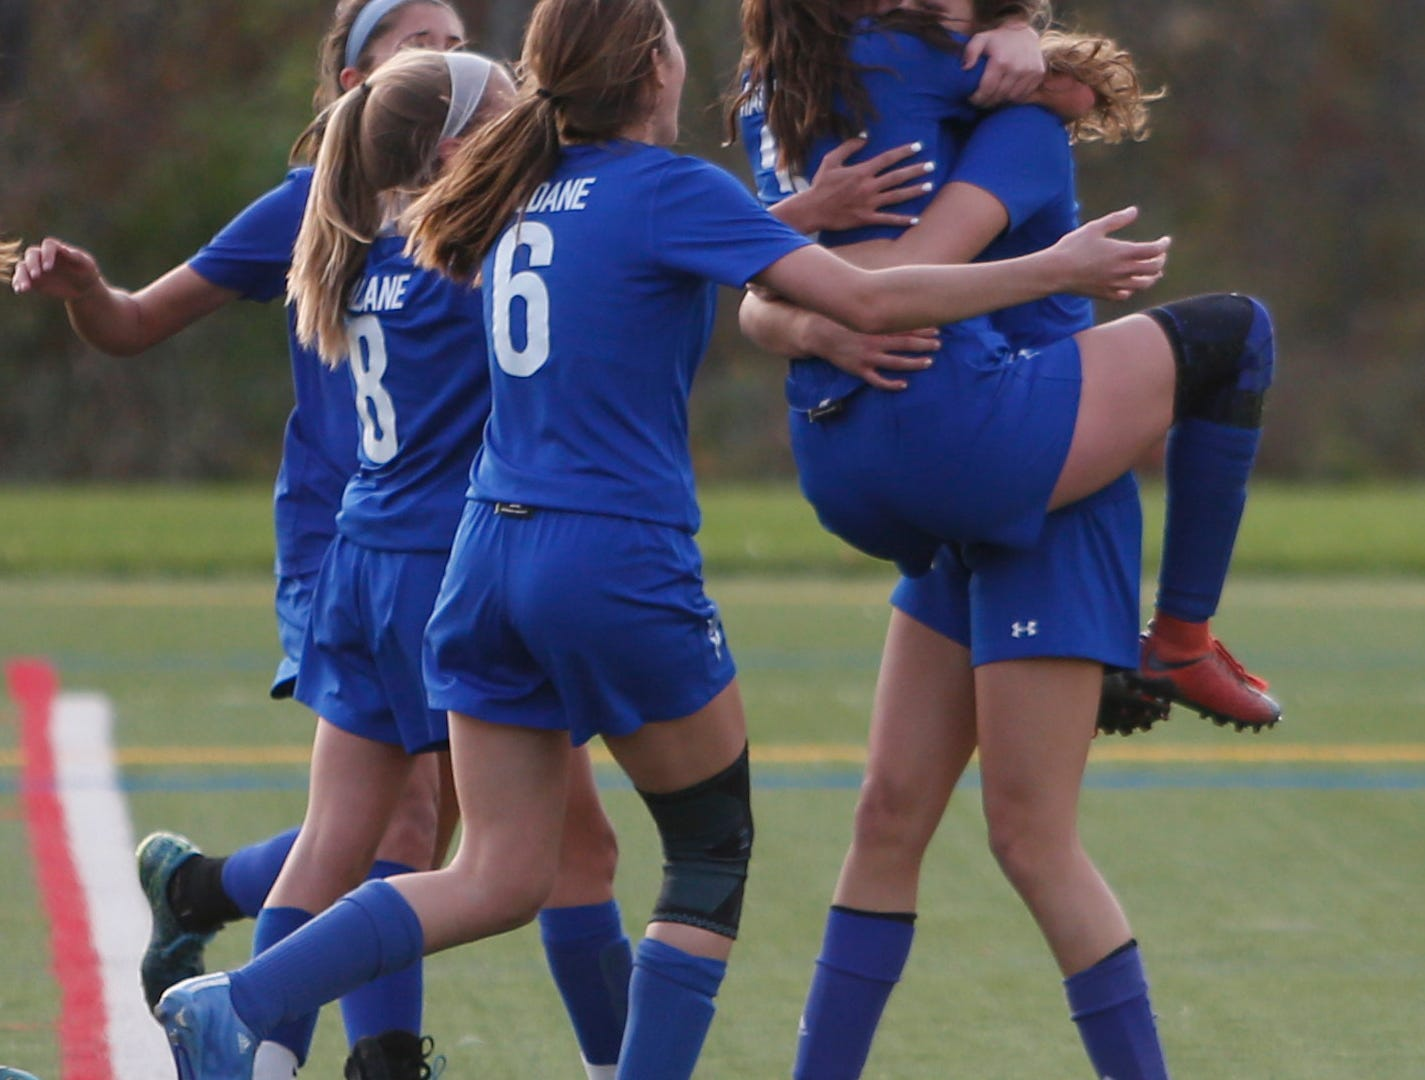 Haldane celebrates scoring a goal to take the lead in overtime during Wednesday's Class C regional semifinal over Millbrook in Freedom Plains on October 31, 2018.